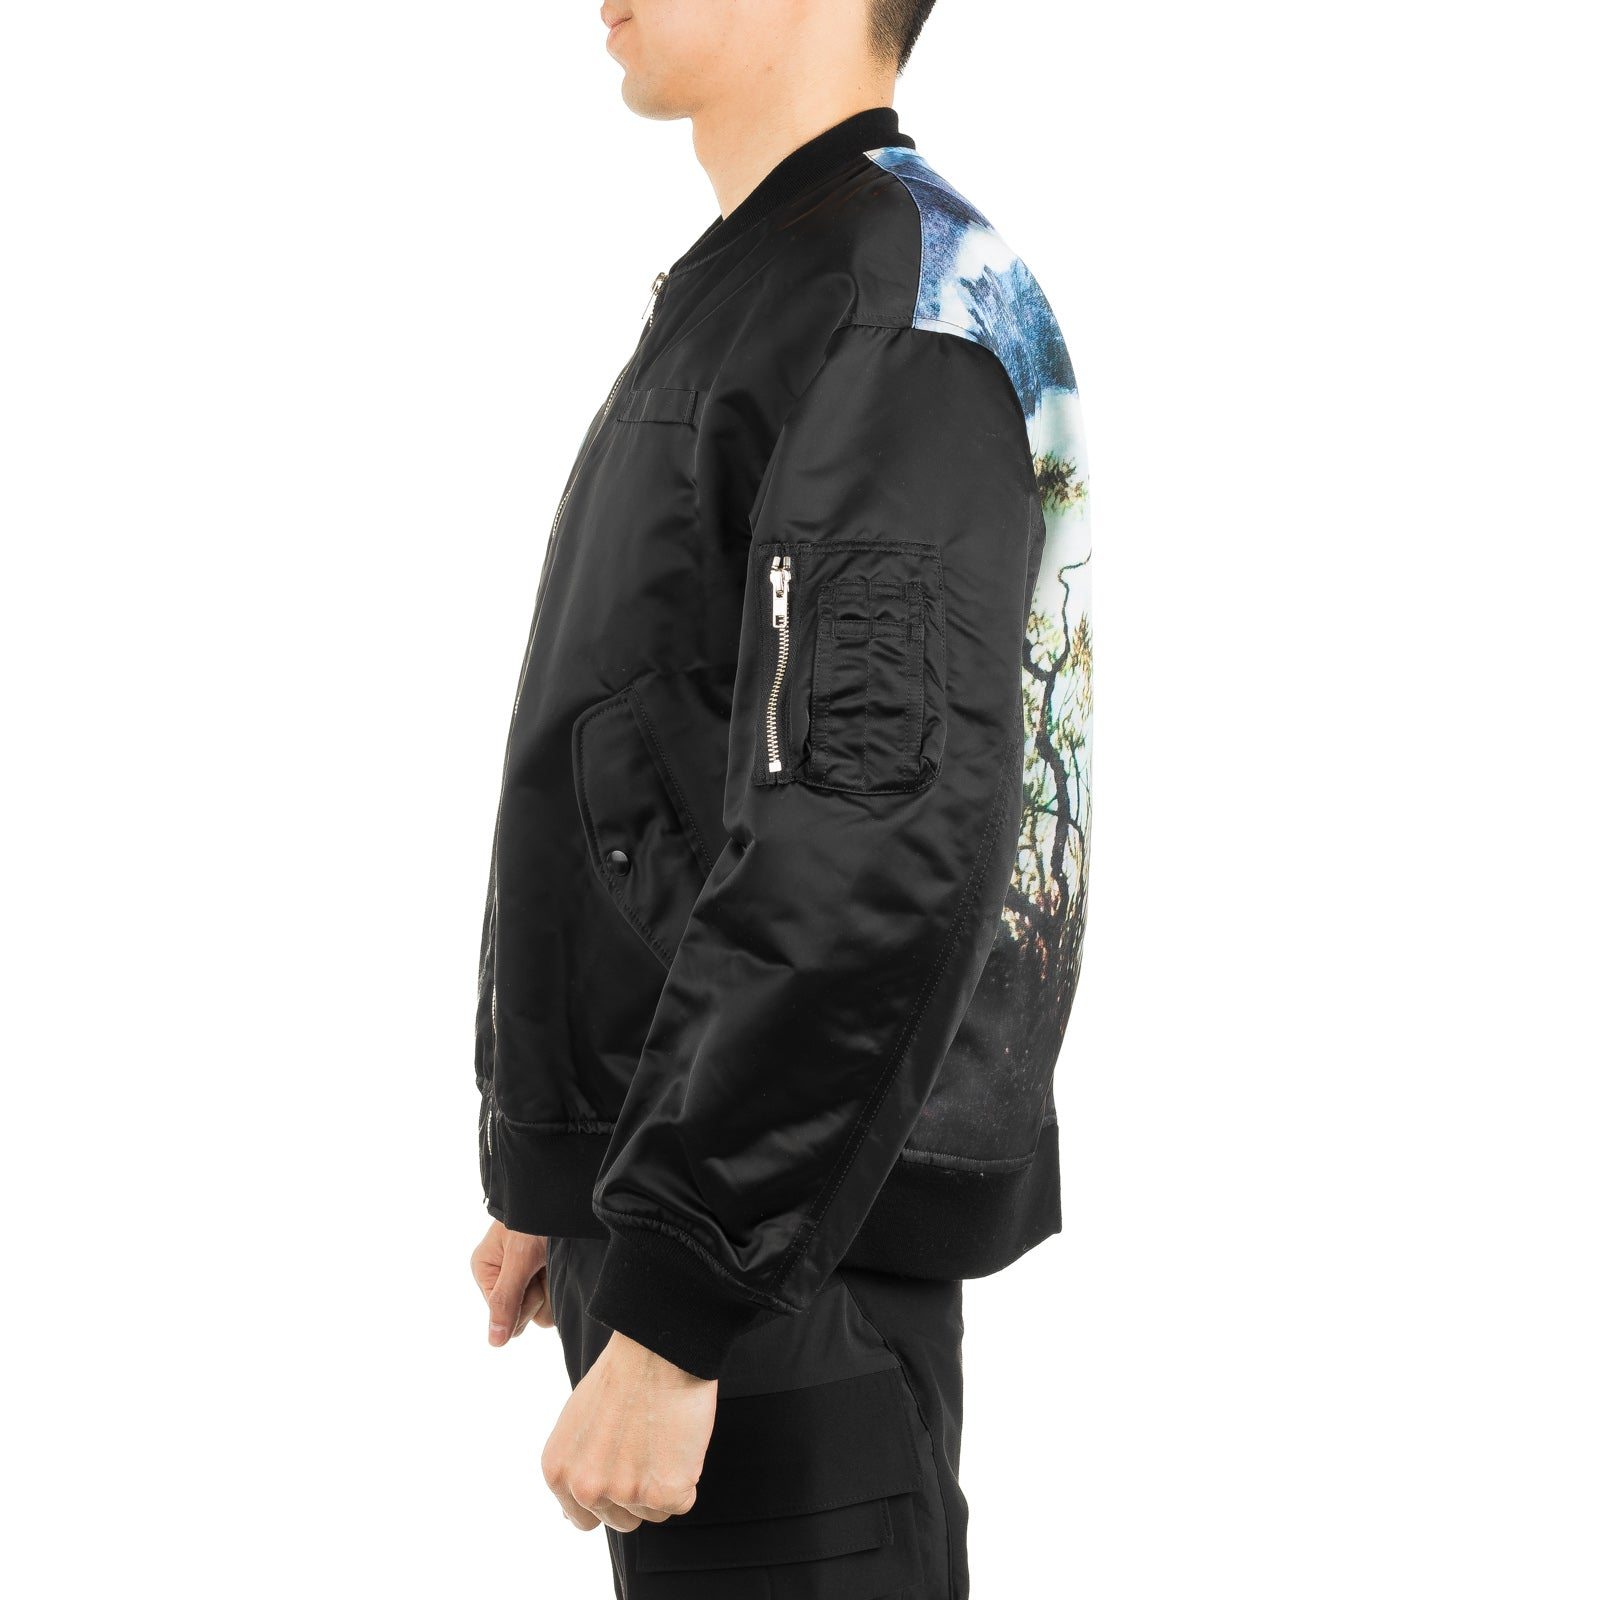 JUW4202-2 JACKET Black